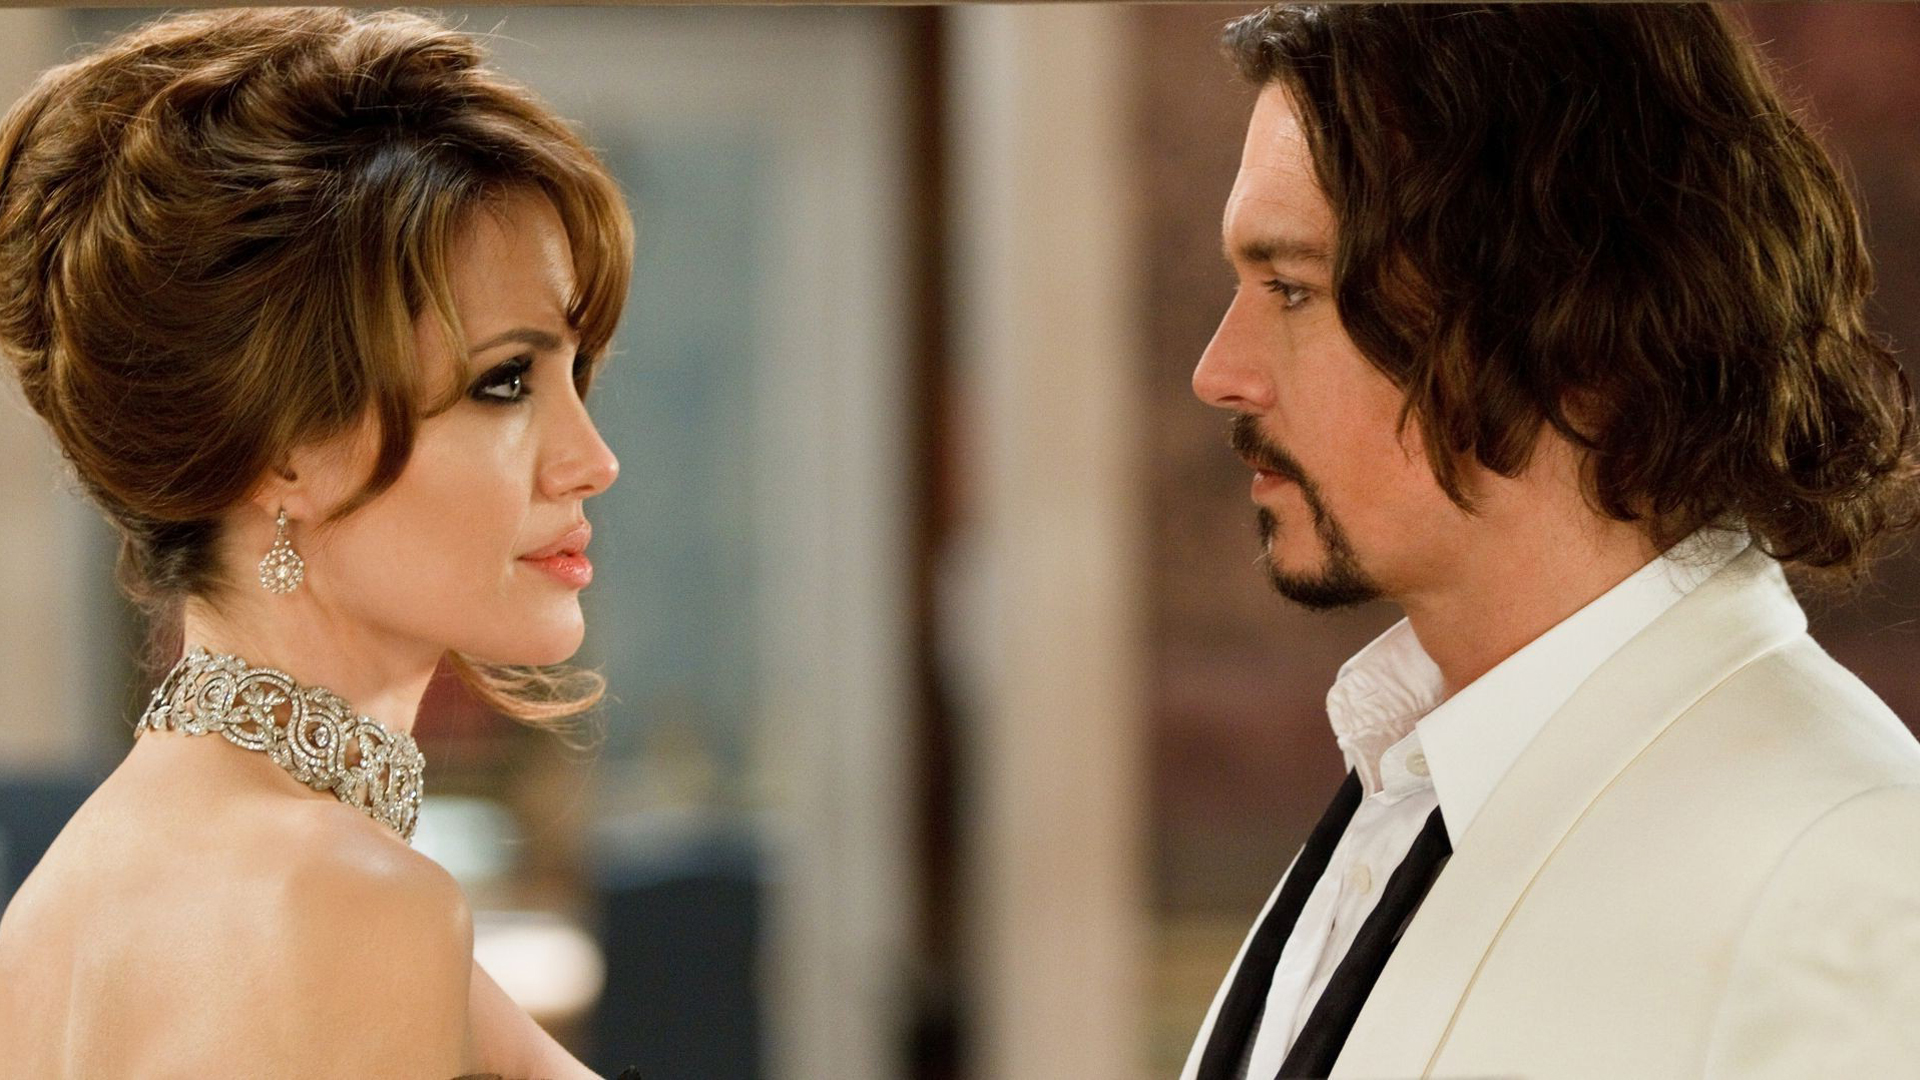 movie couples HATED